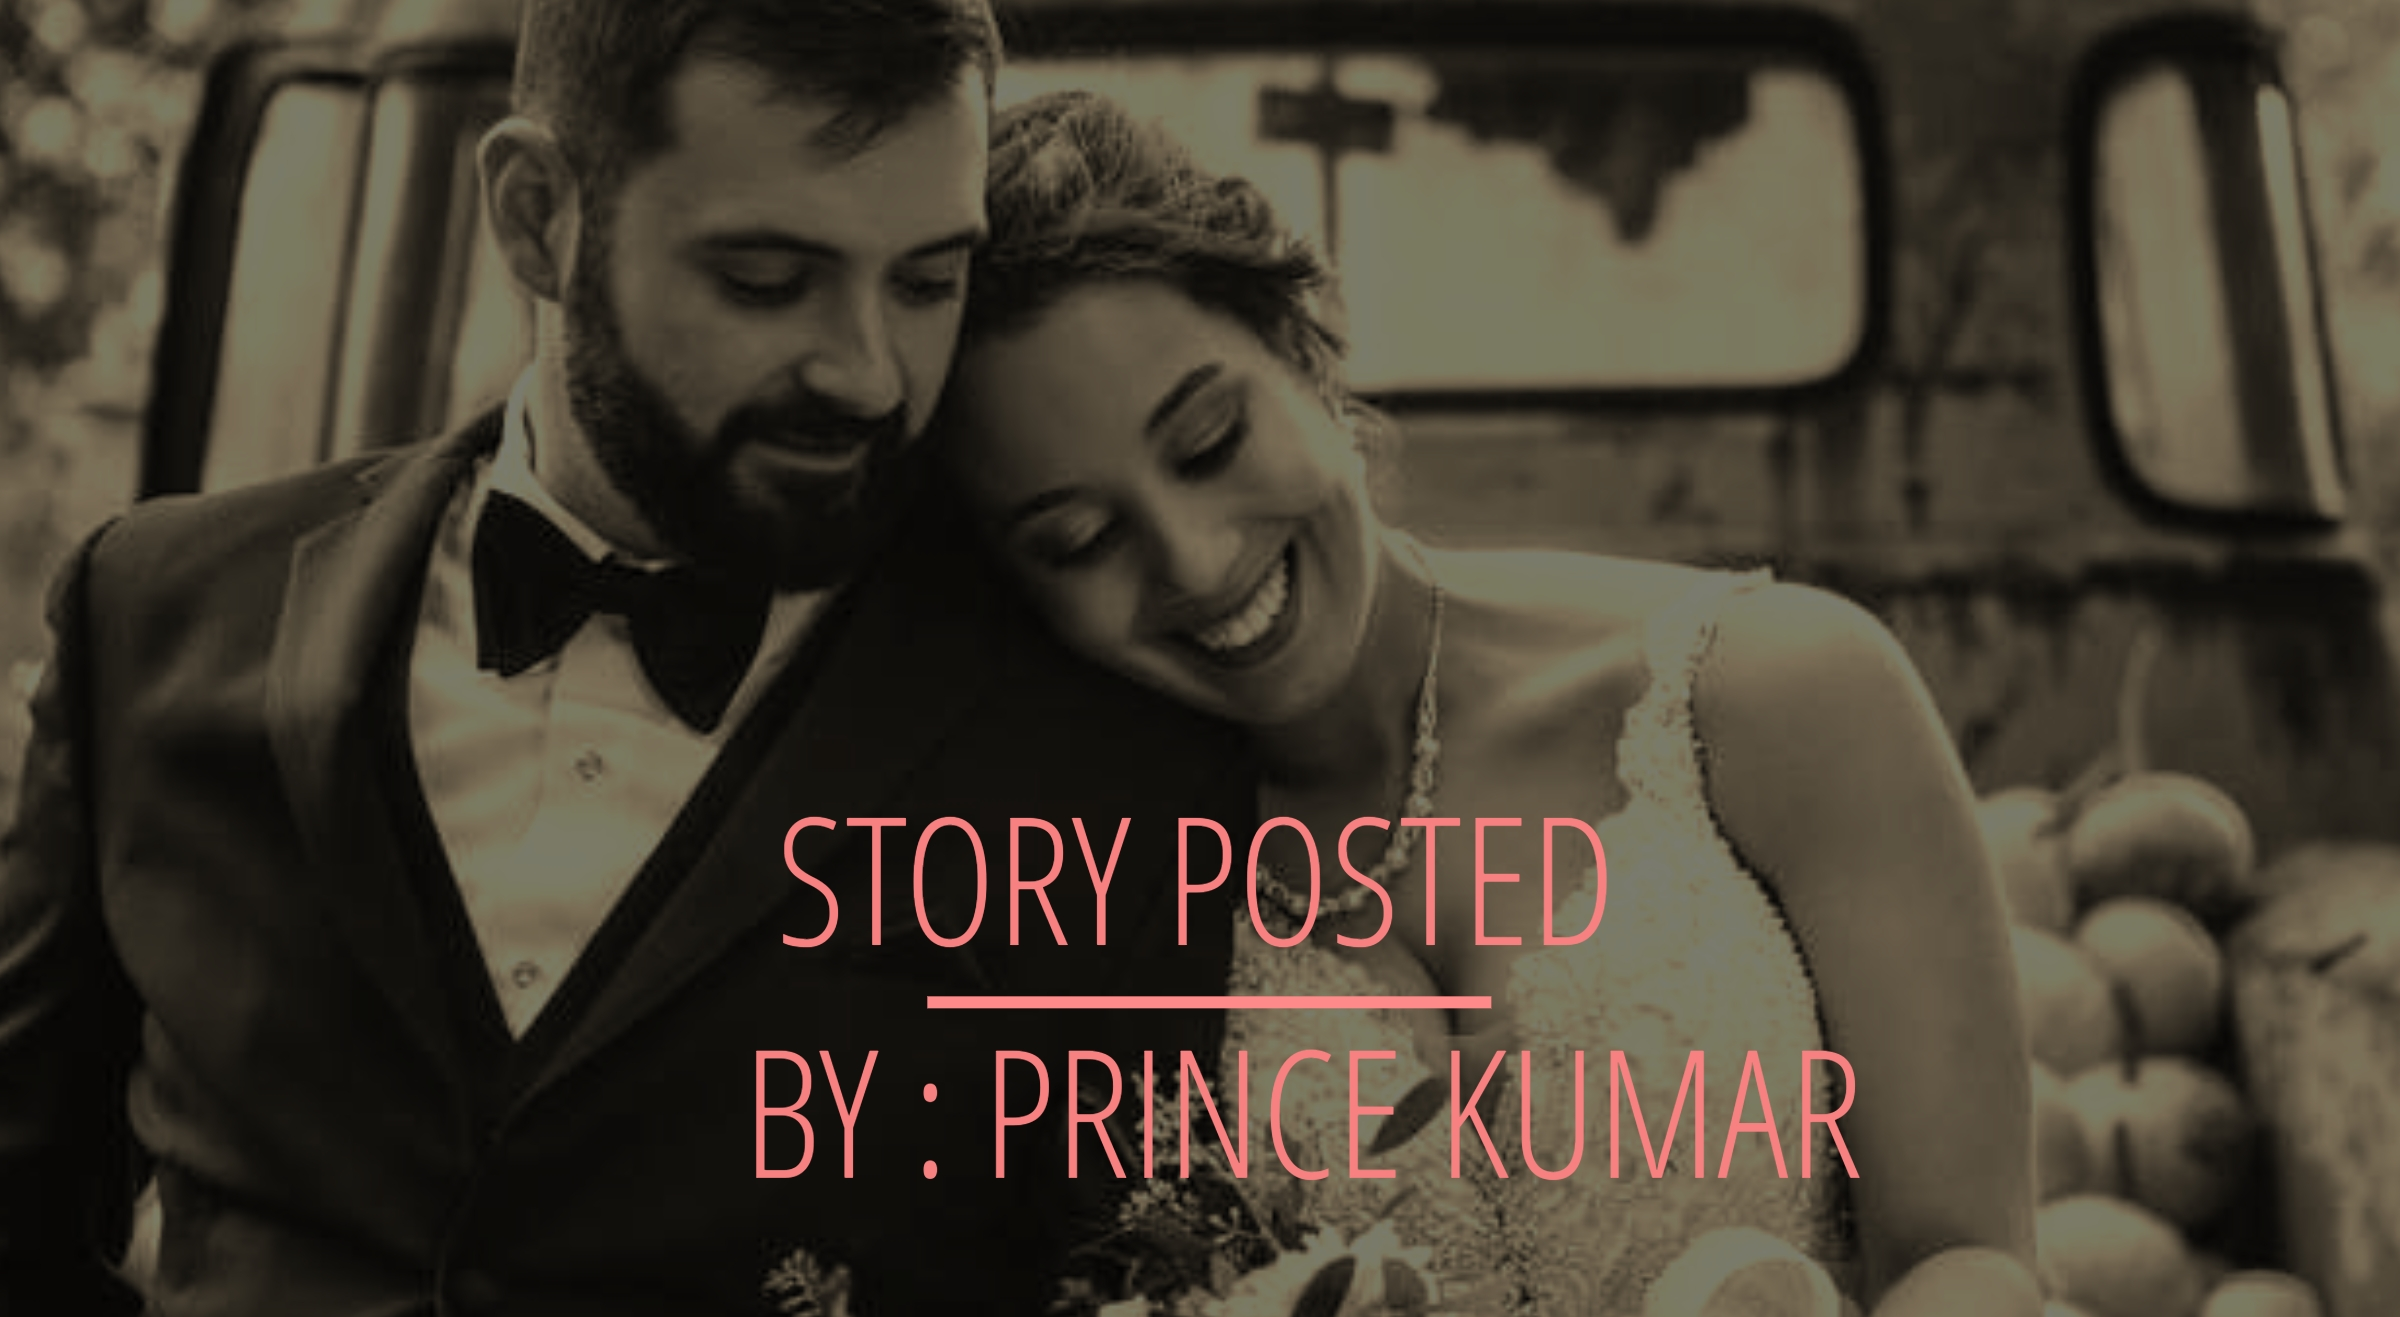 10. STORY POSTED BY PRINCE KUMAR